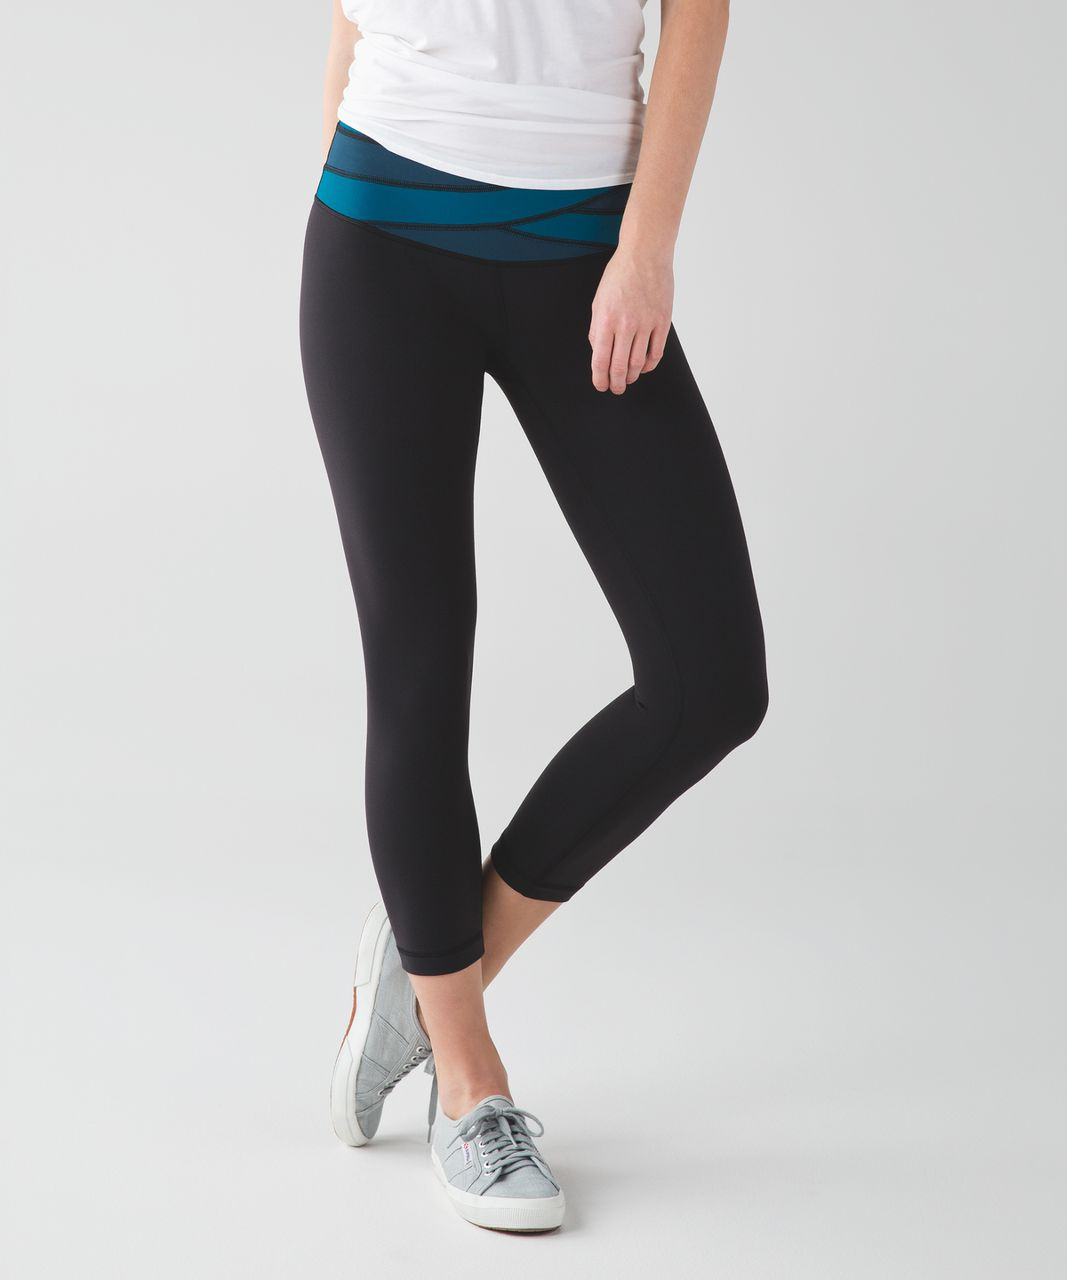 Lululemon Wunder Under Crop III - Black / Tofino Teal / Alberta Lake